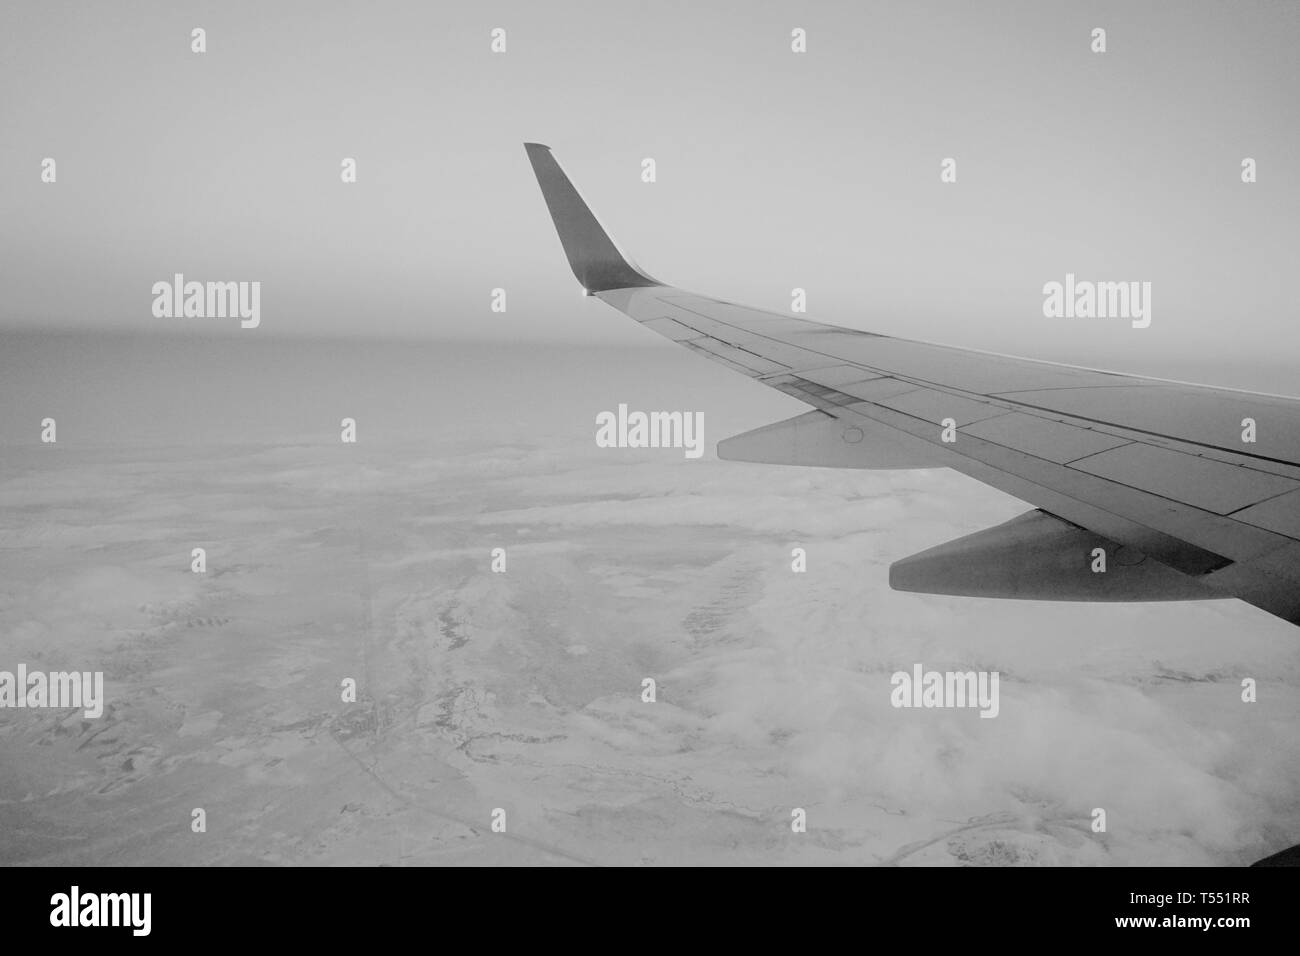 Airplane wing over snowy earth at daybreak. - Stock Image